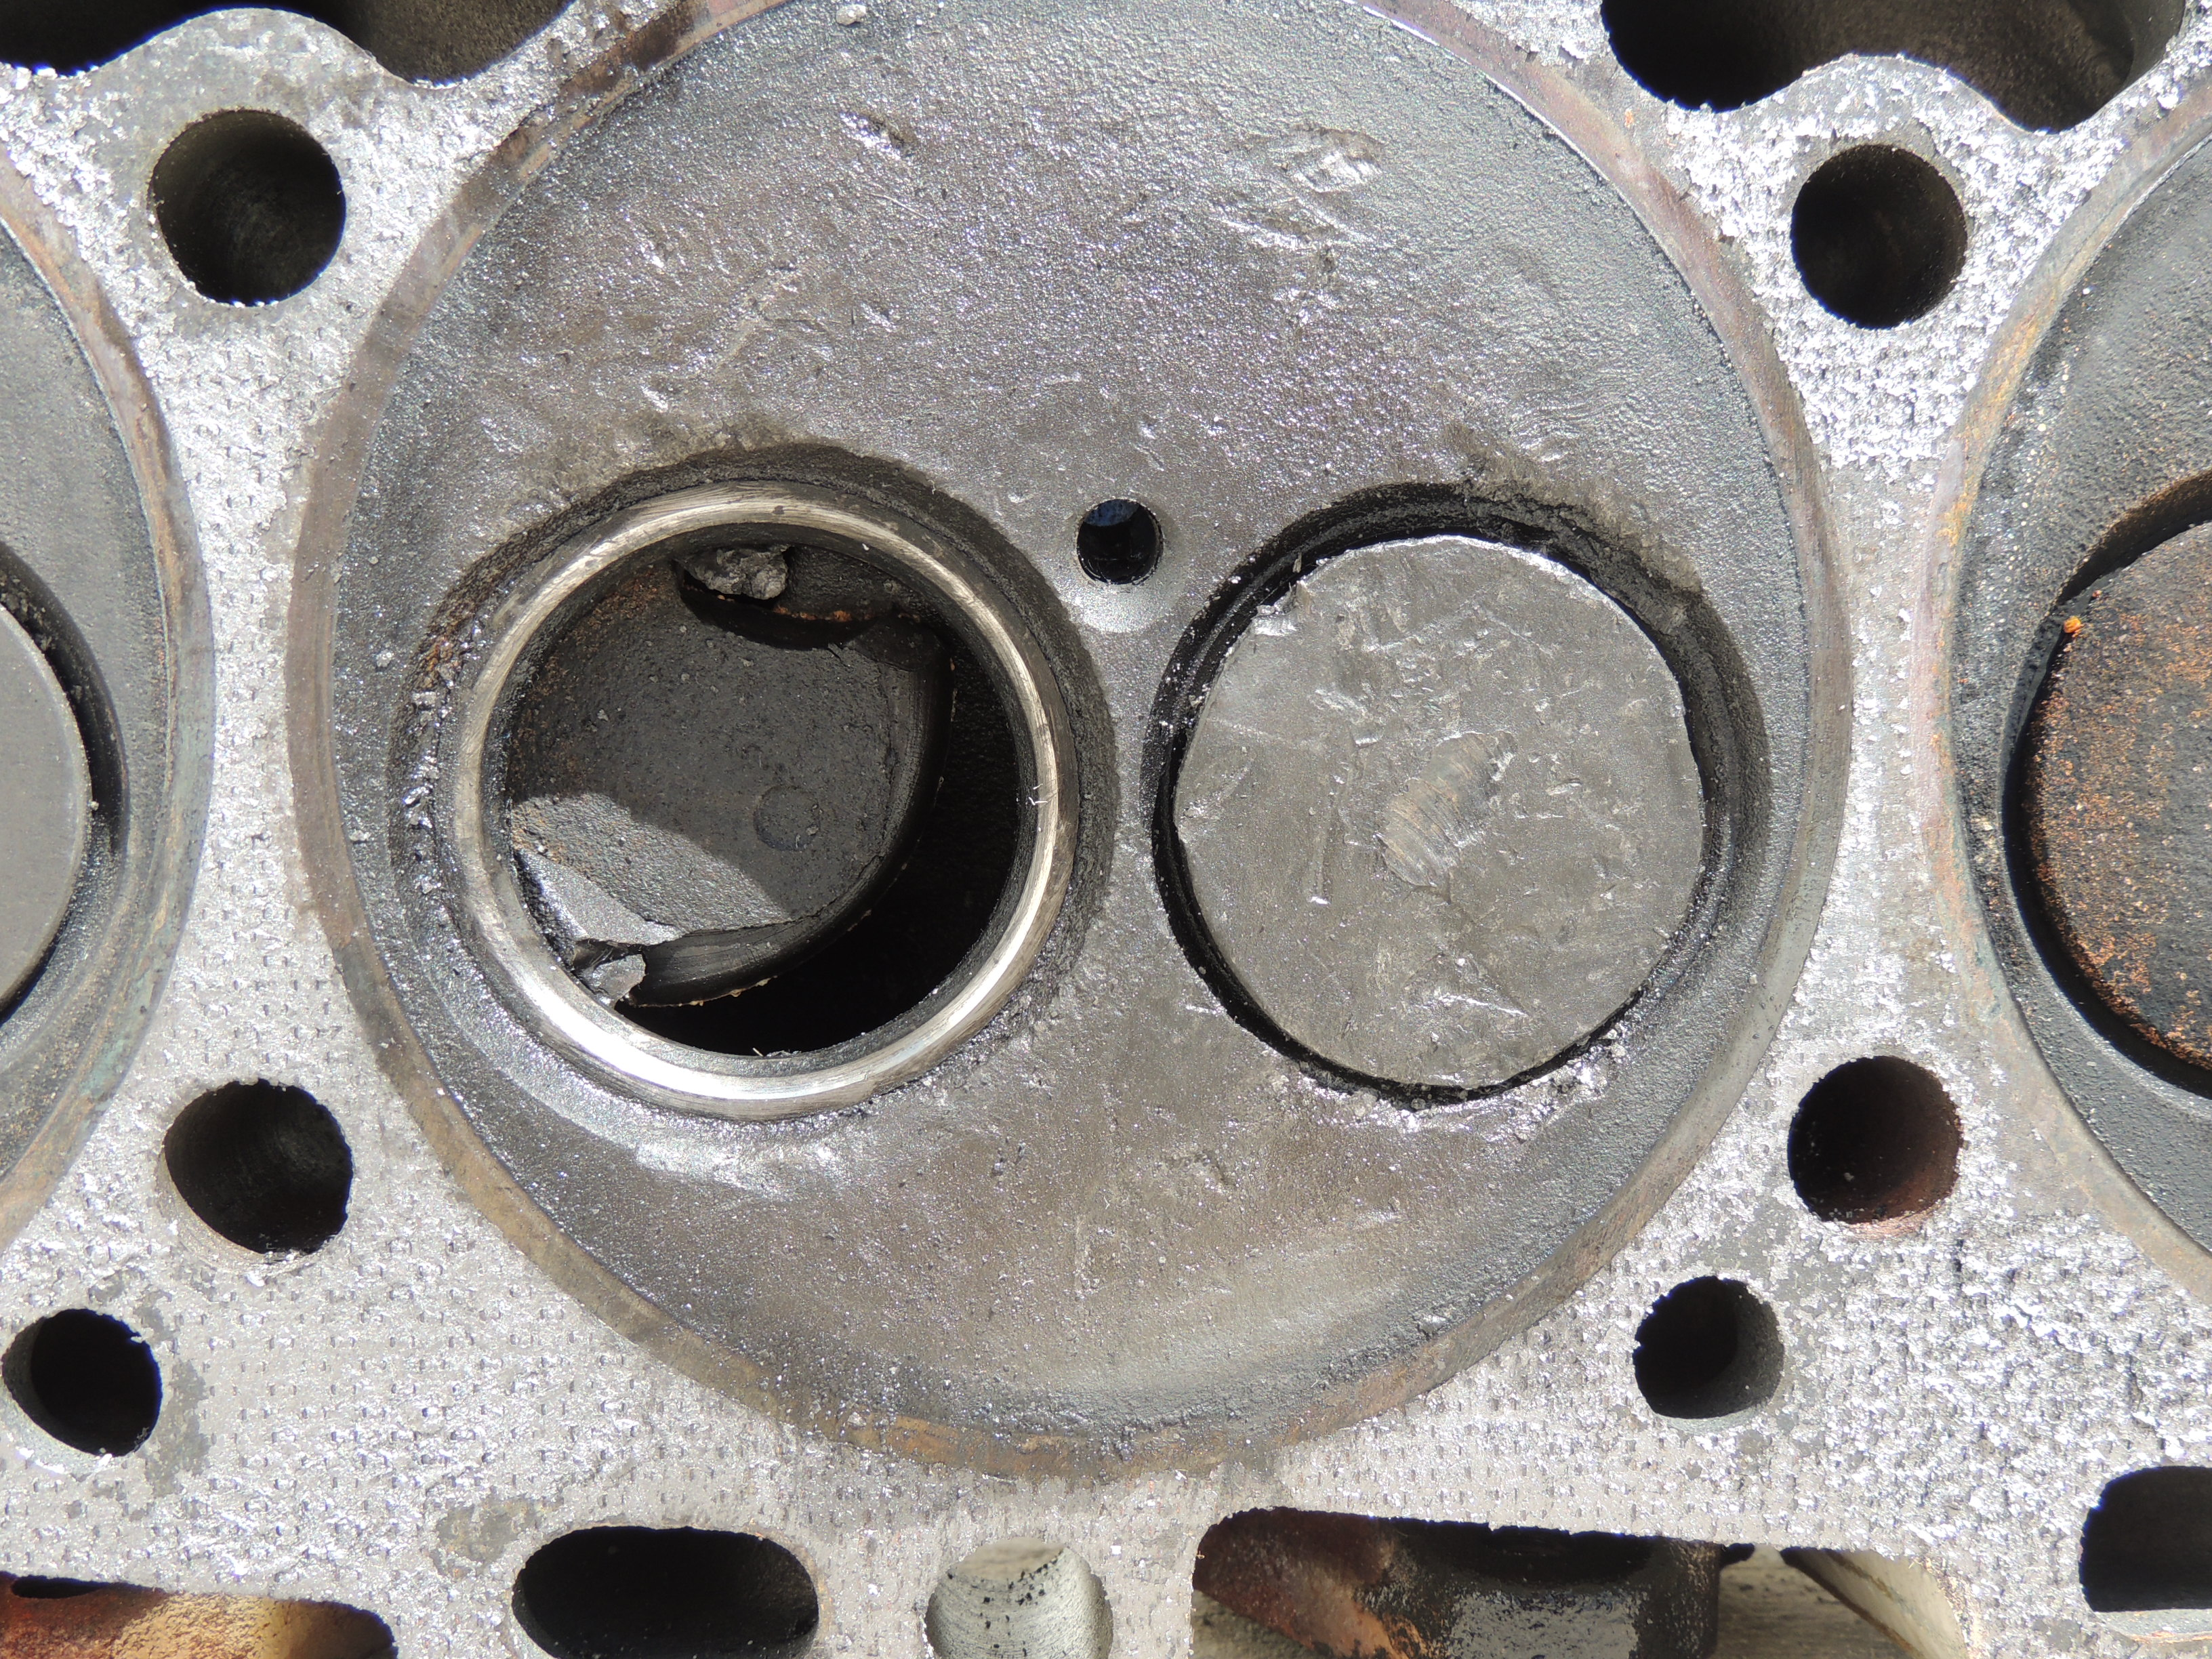 Cummins 480CE Dropped Valve Damage